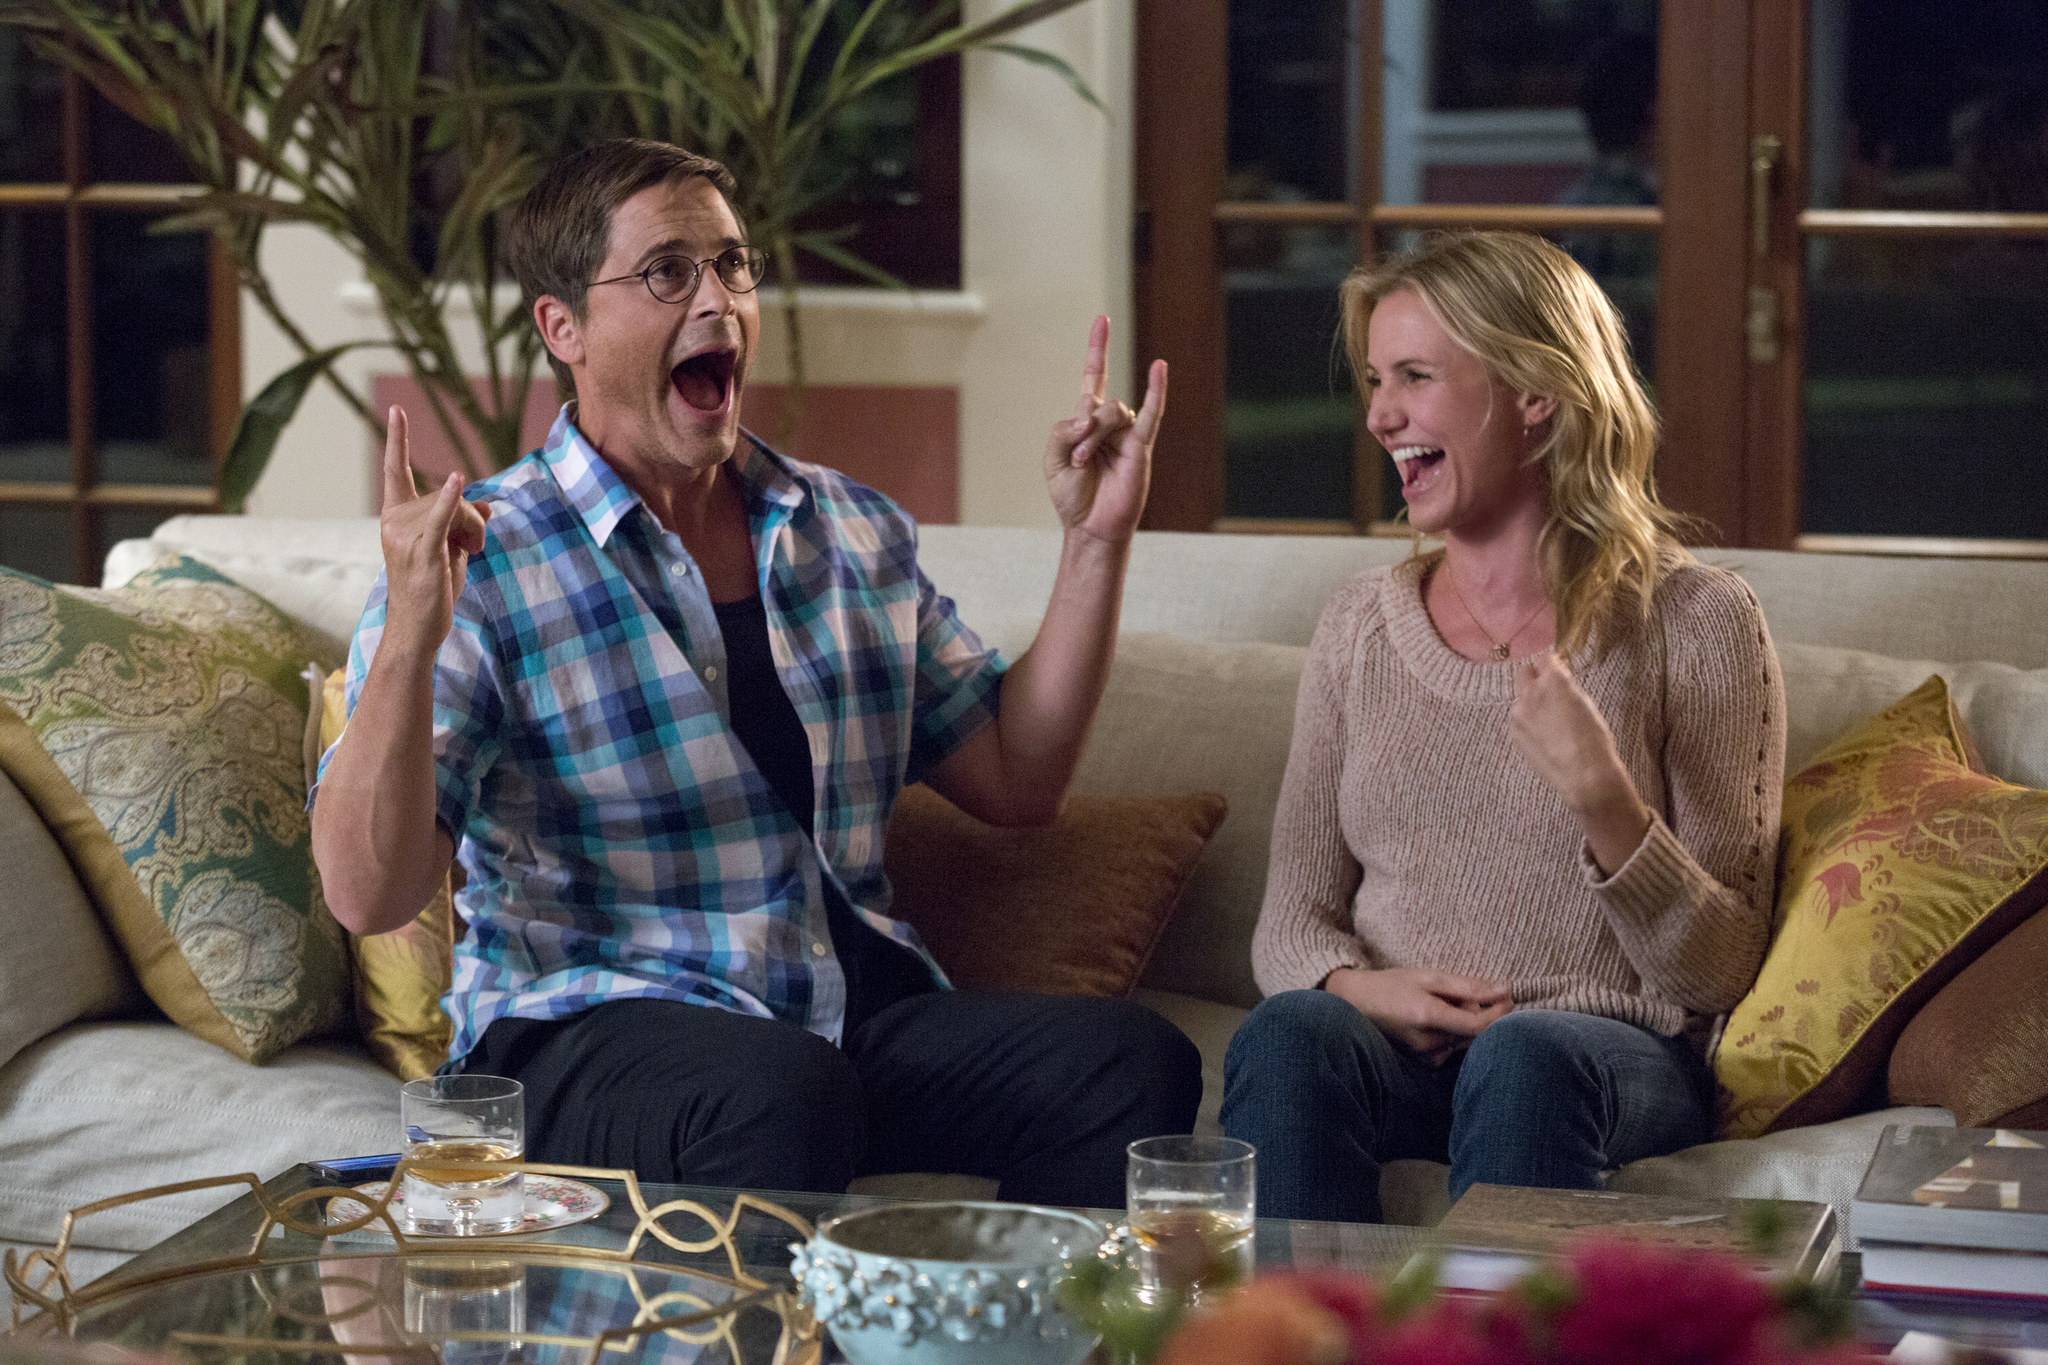 Cameron Diaz and Rob Lowe in Sex Tape (2014)